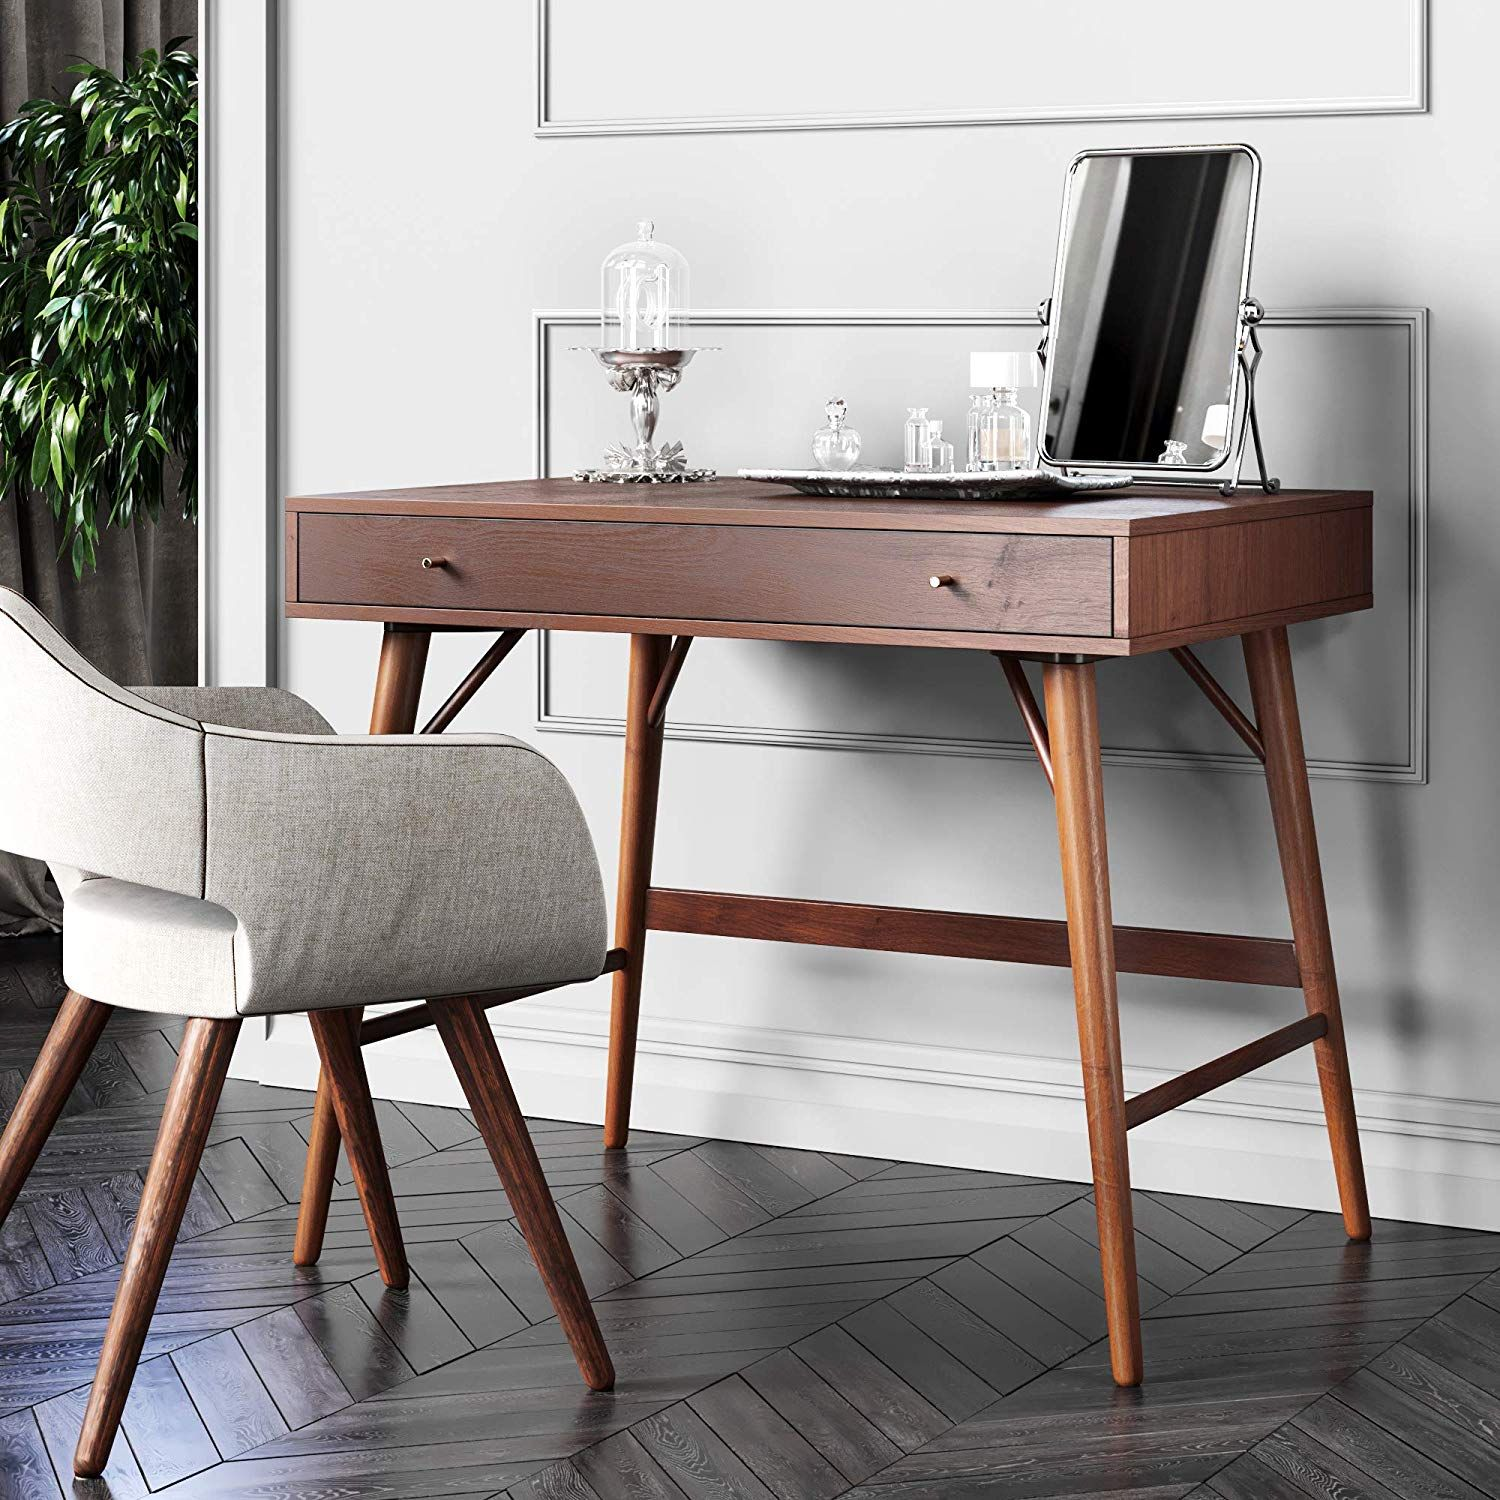 Bonny Wood Desk Mid Century Modern For Home Office Small Writing Station In 2020 Solid Wood Desk Mid Century Desk Home Office Furniture